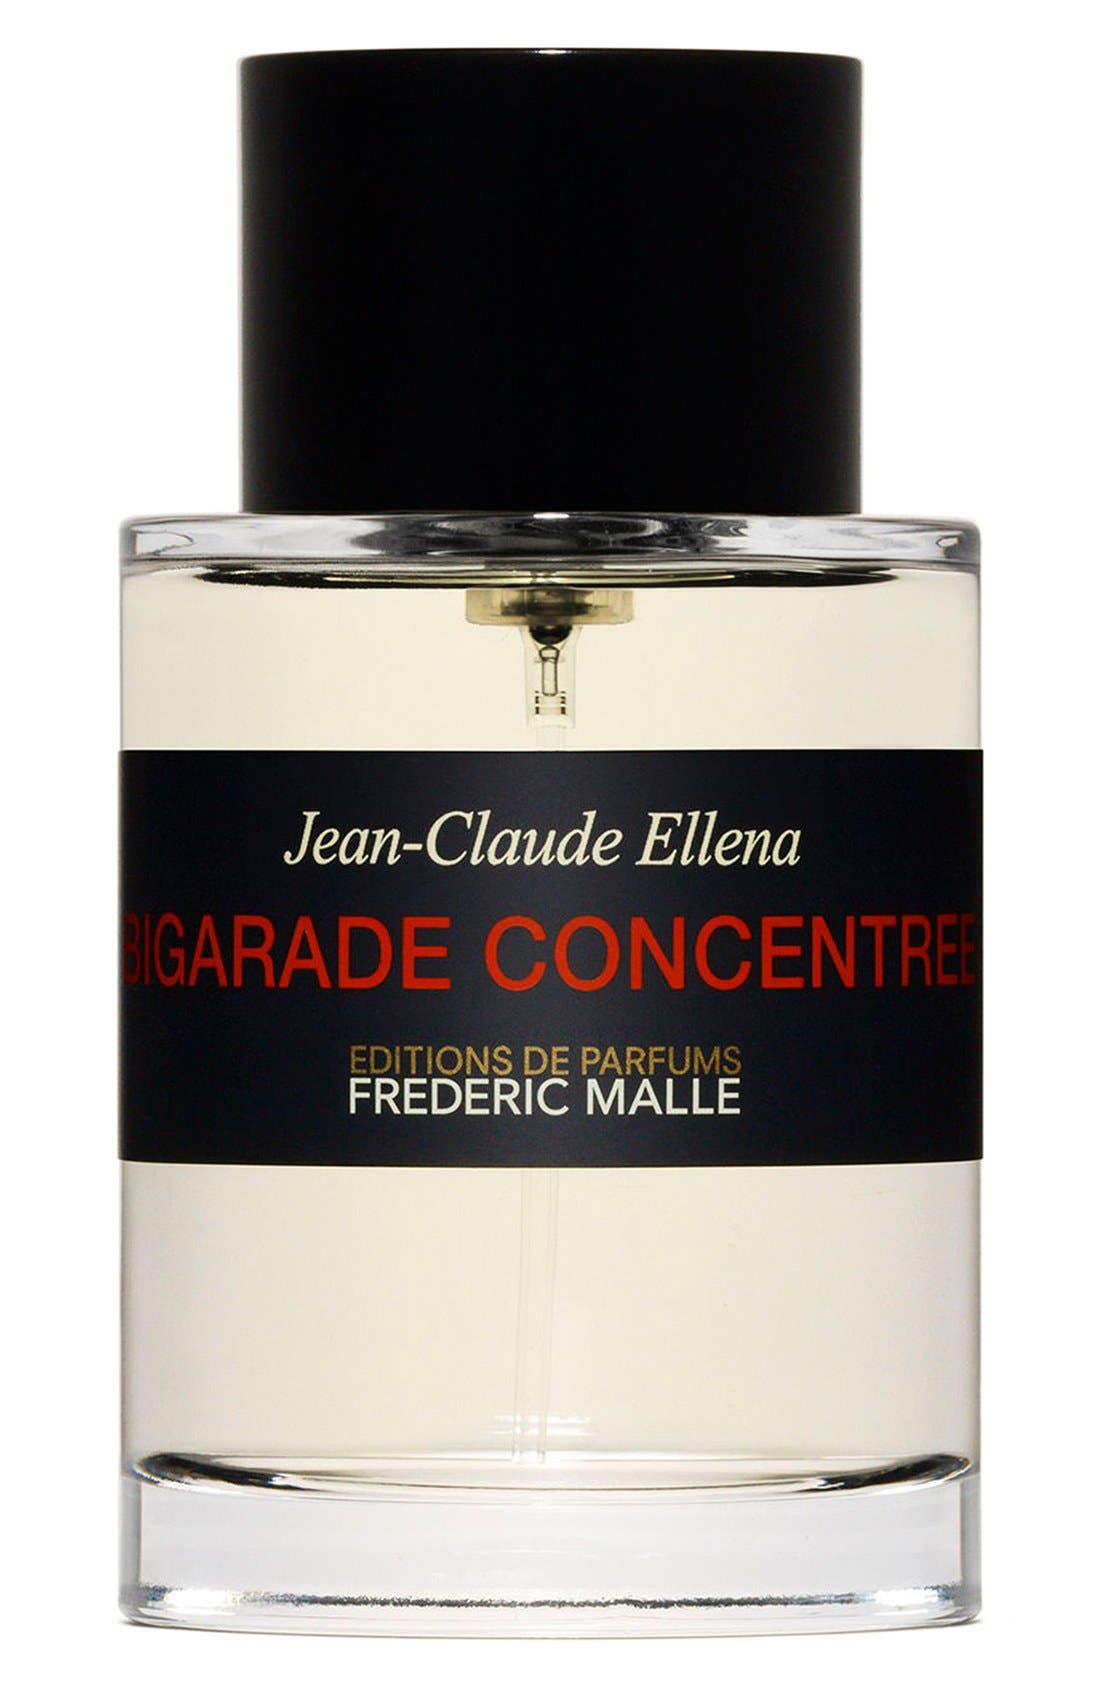 Editions de Parfums Frédéric Malle Bigrade Concentrée Parfum Spray